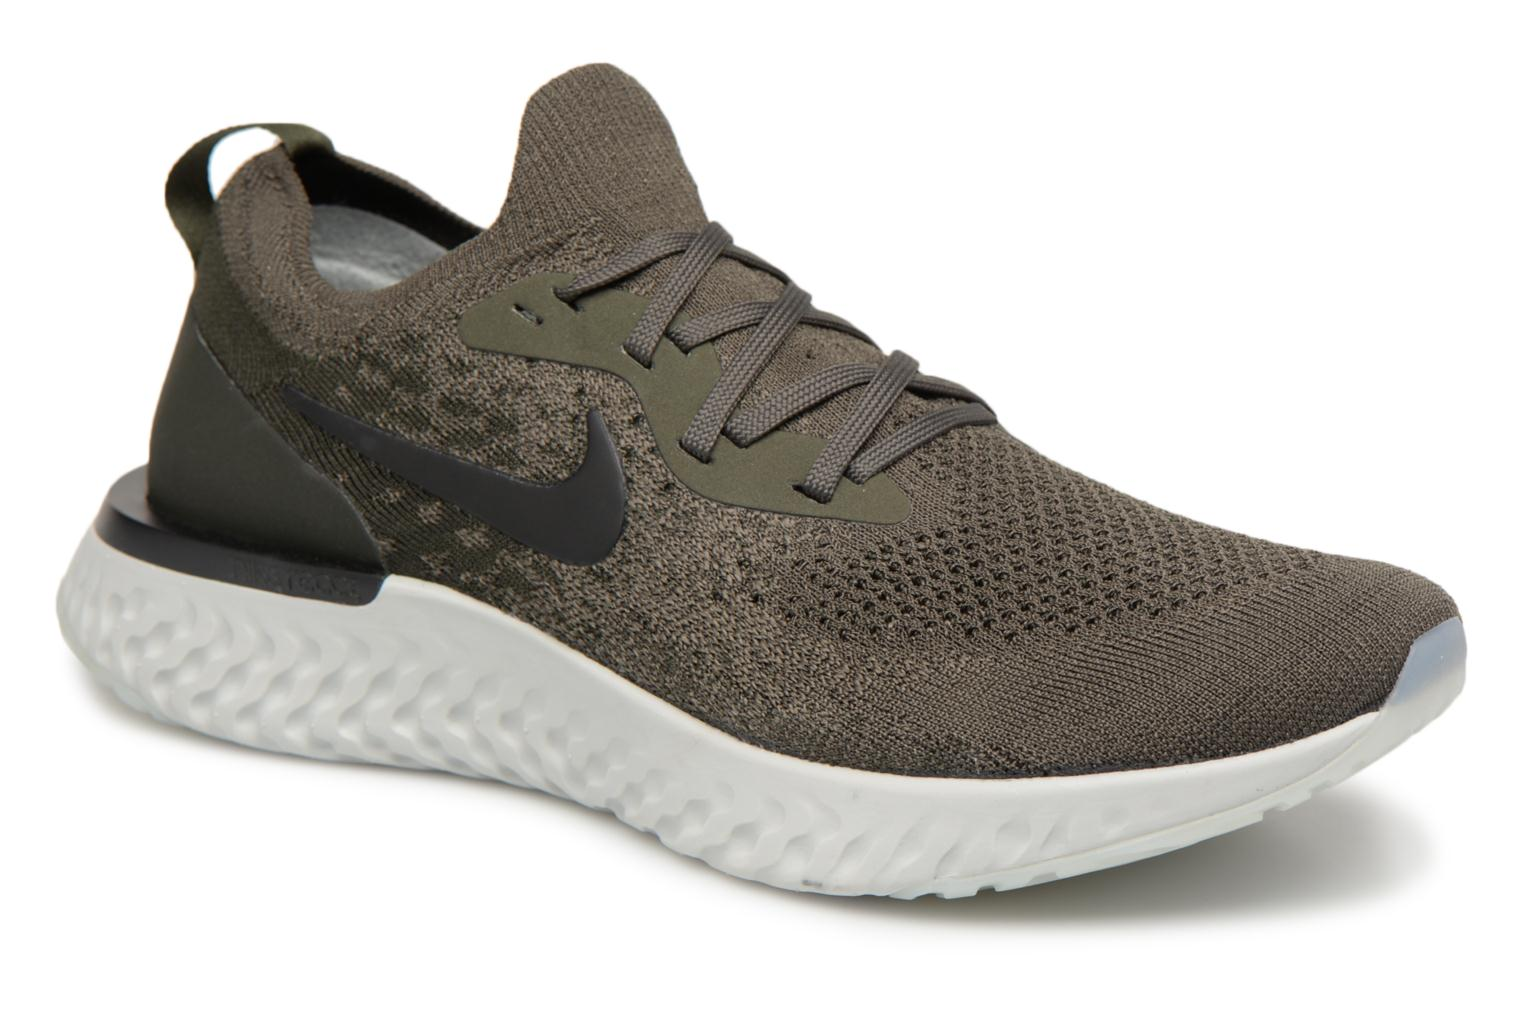 Cargo Nike Silver Khaki sequoia black light Flyknit Epic React jRL5A4